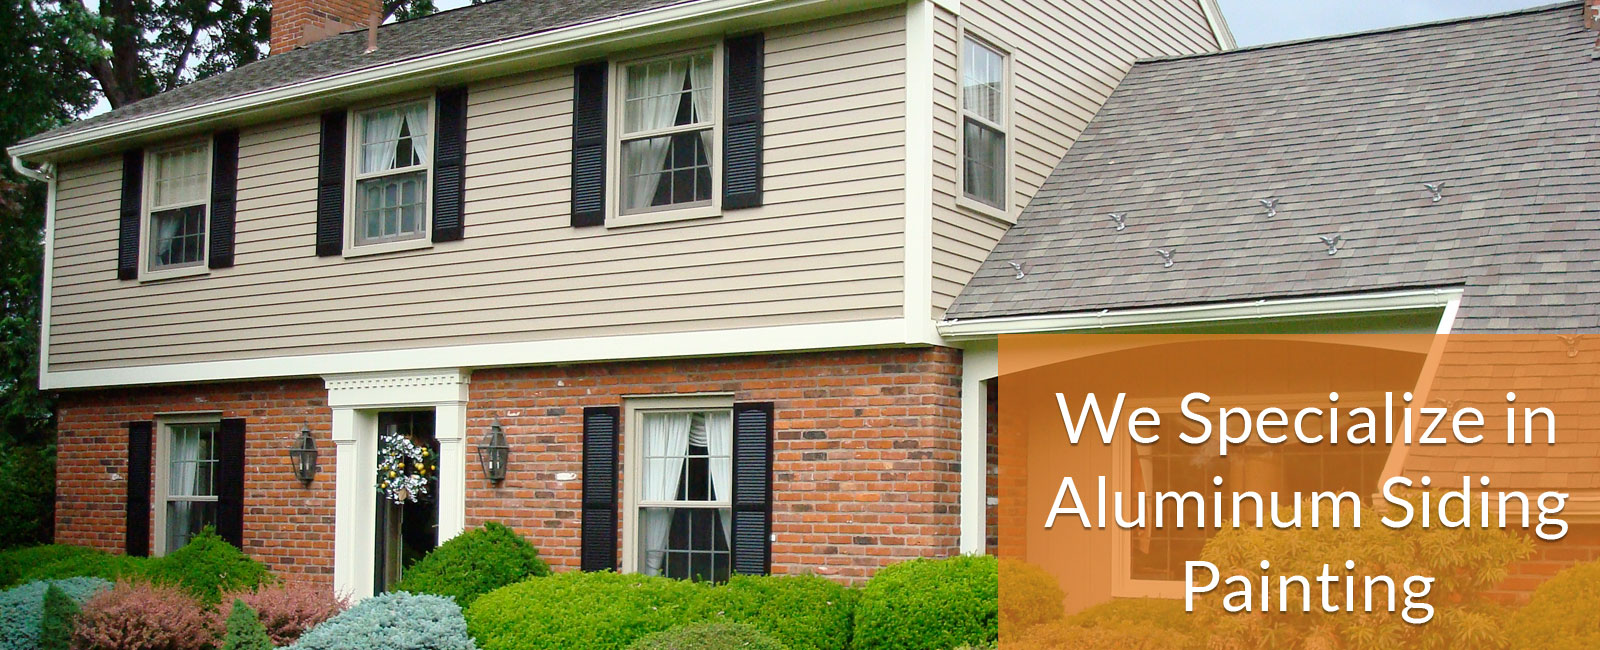 Aluminum Siding Painting in Allentown OA